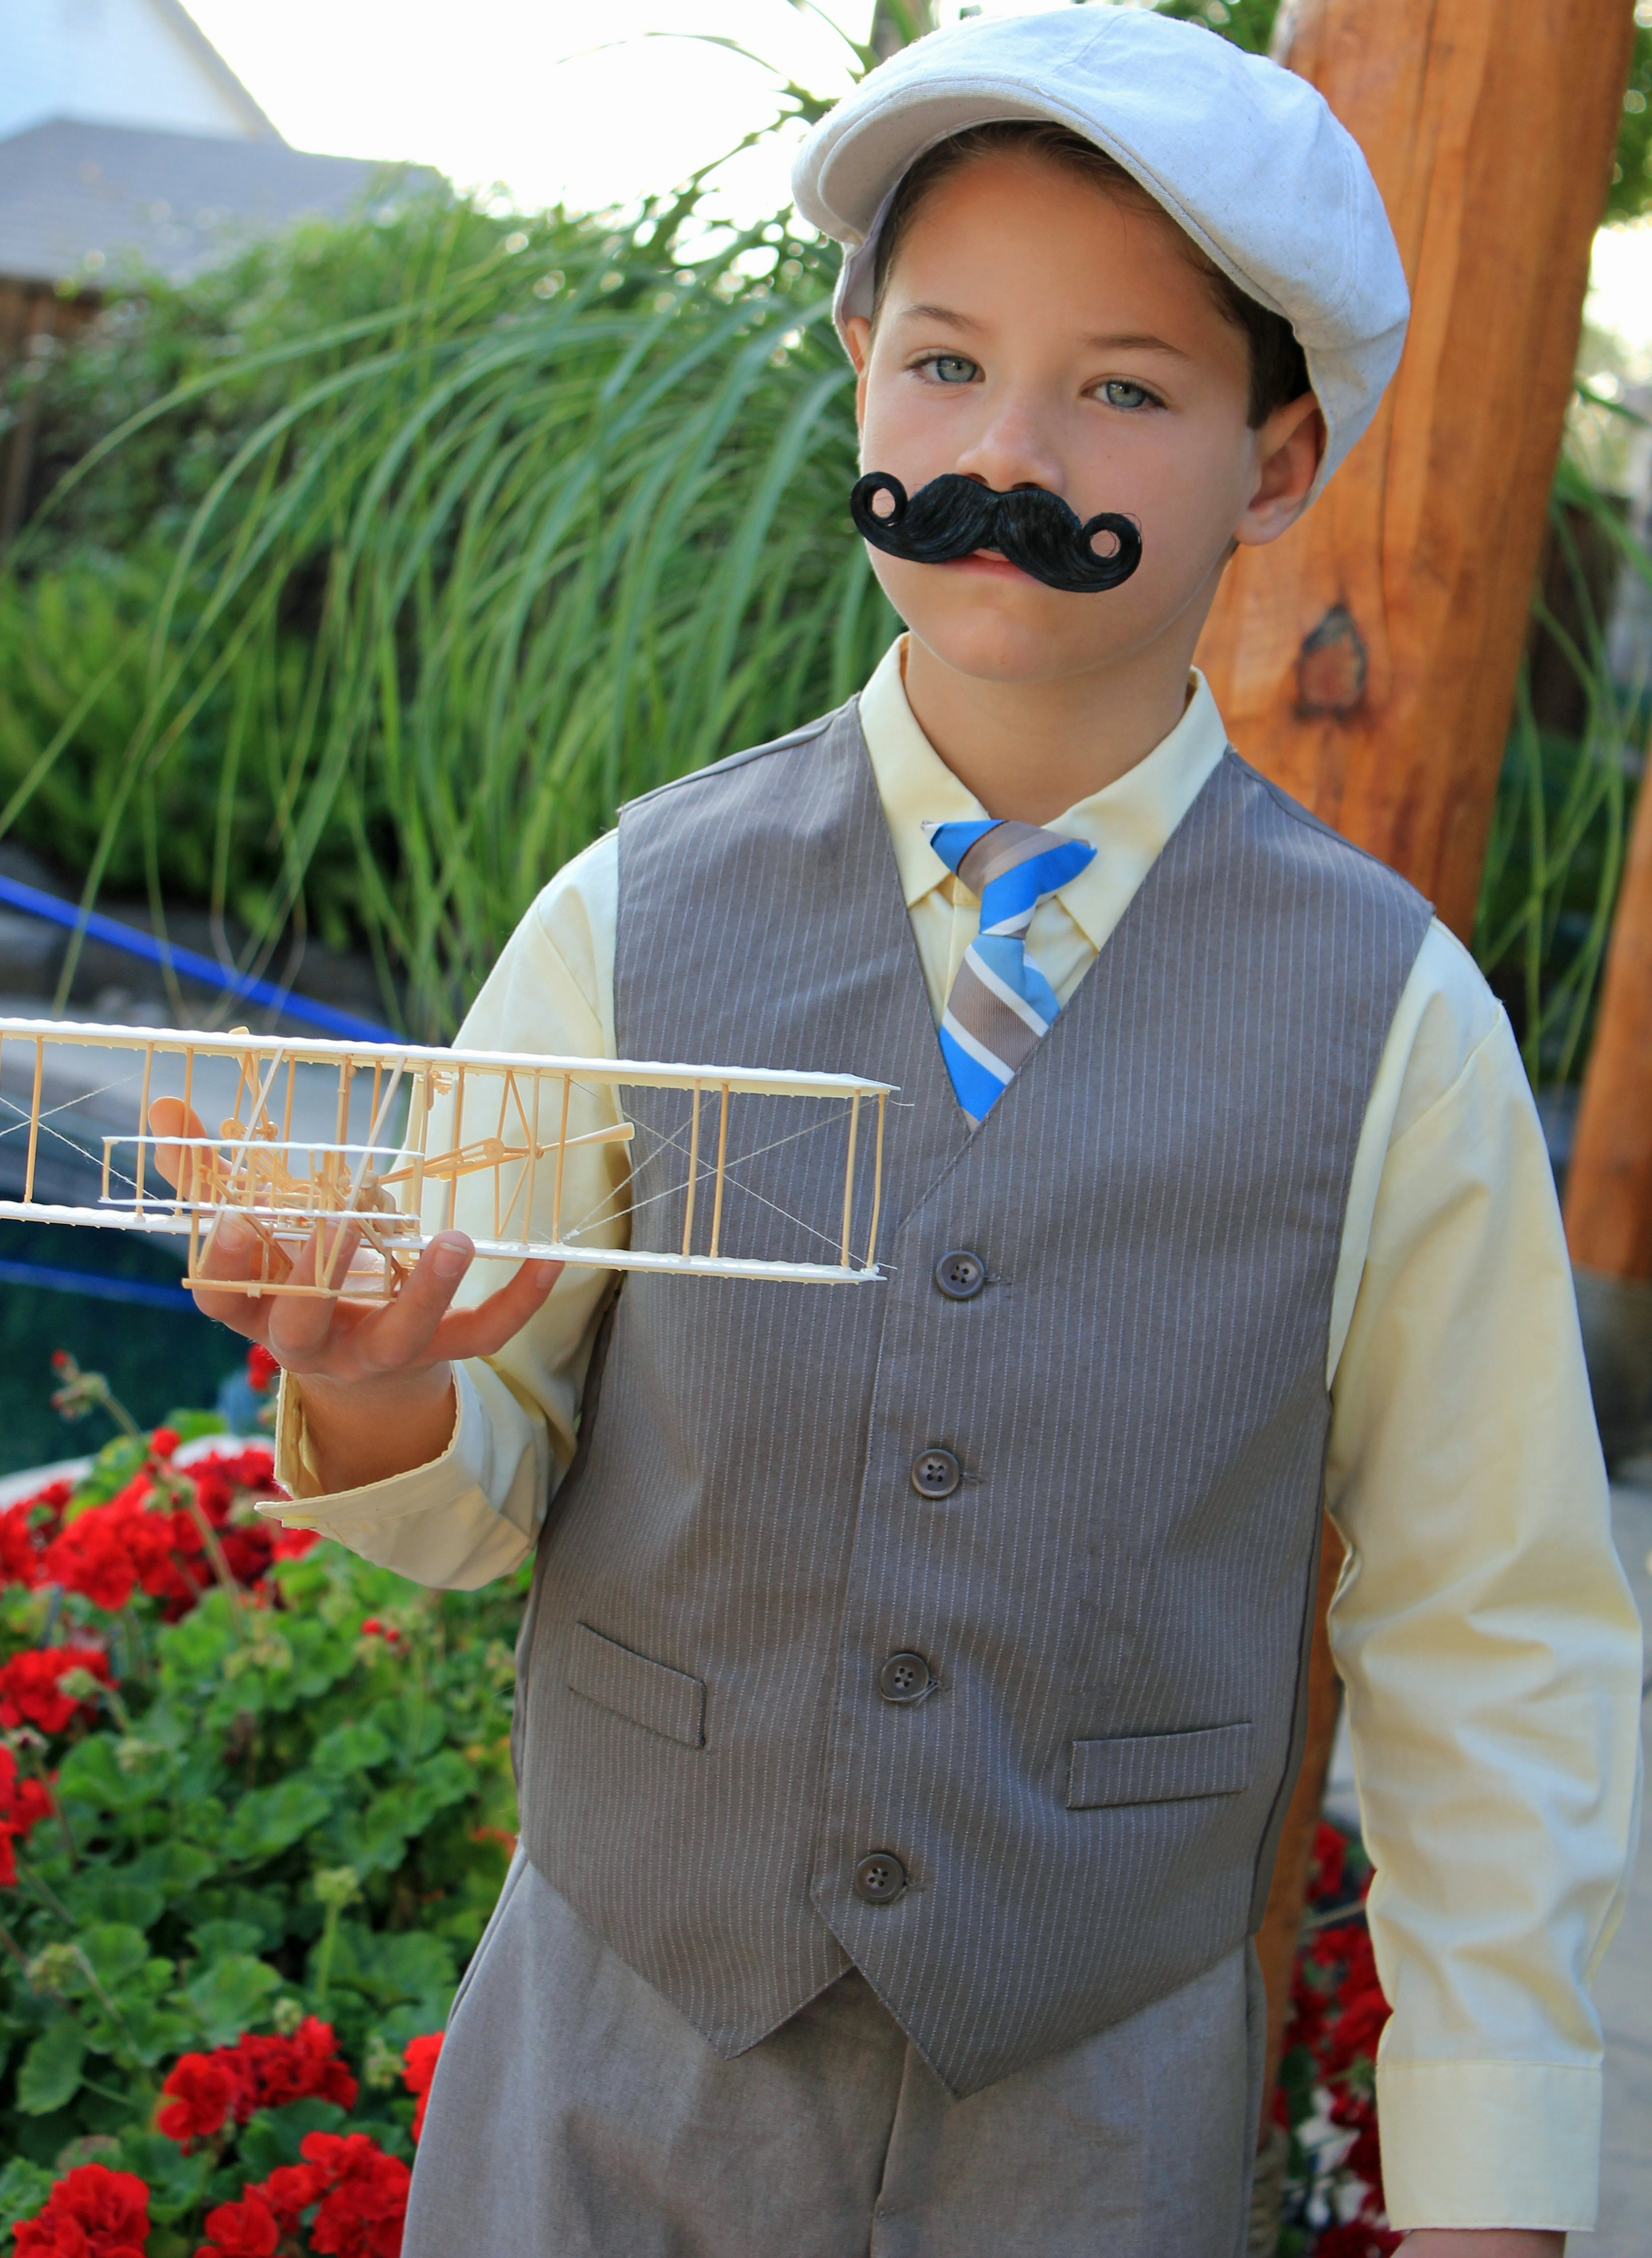 1000+ images about Living wax museum ideas on Pinterest.